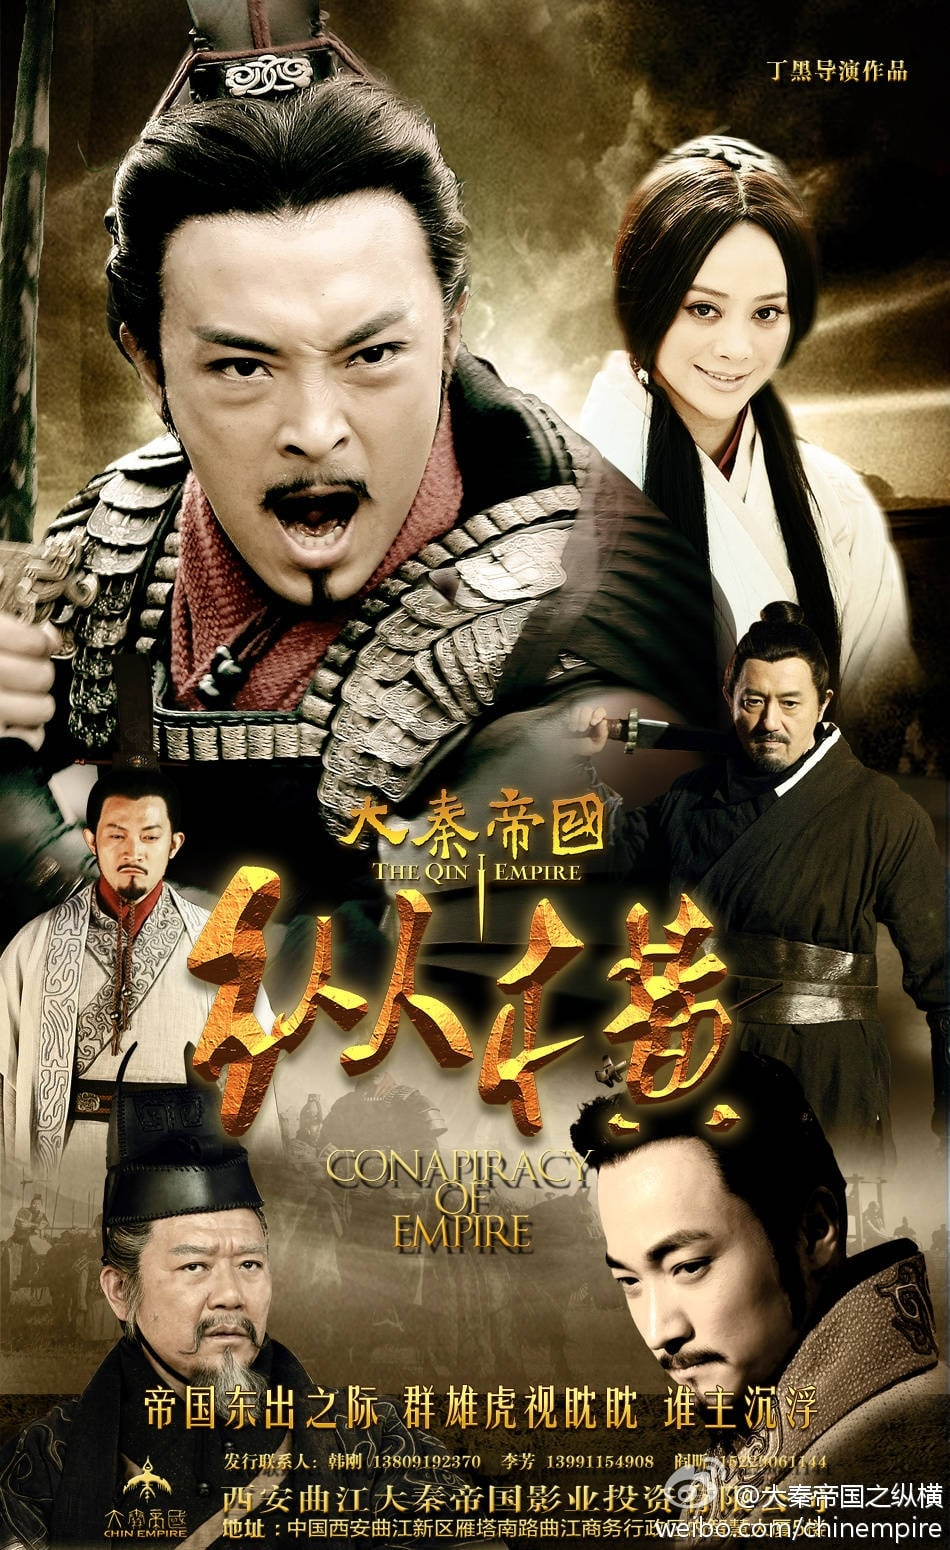 The Qin Empire (2009)